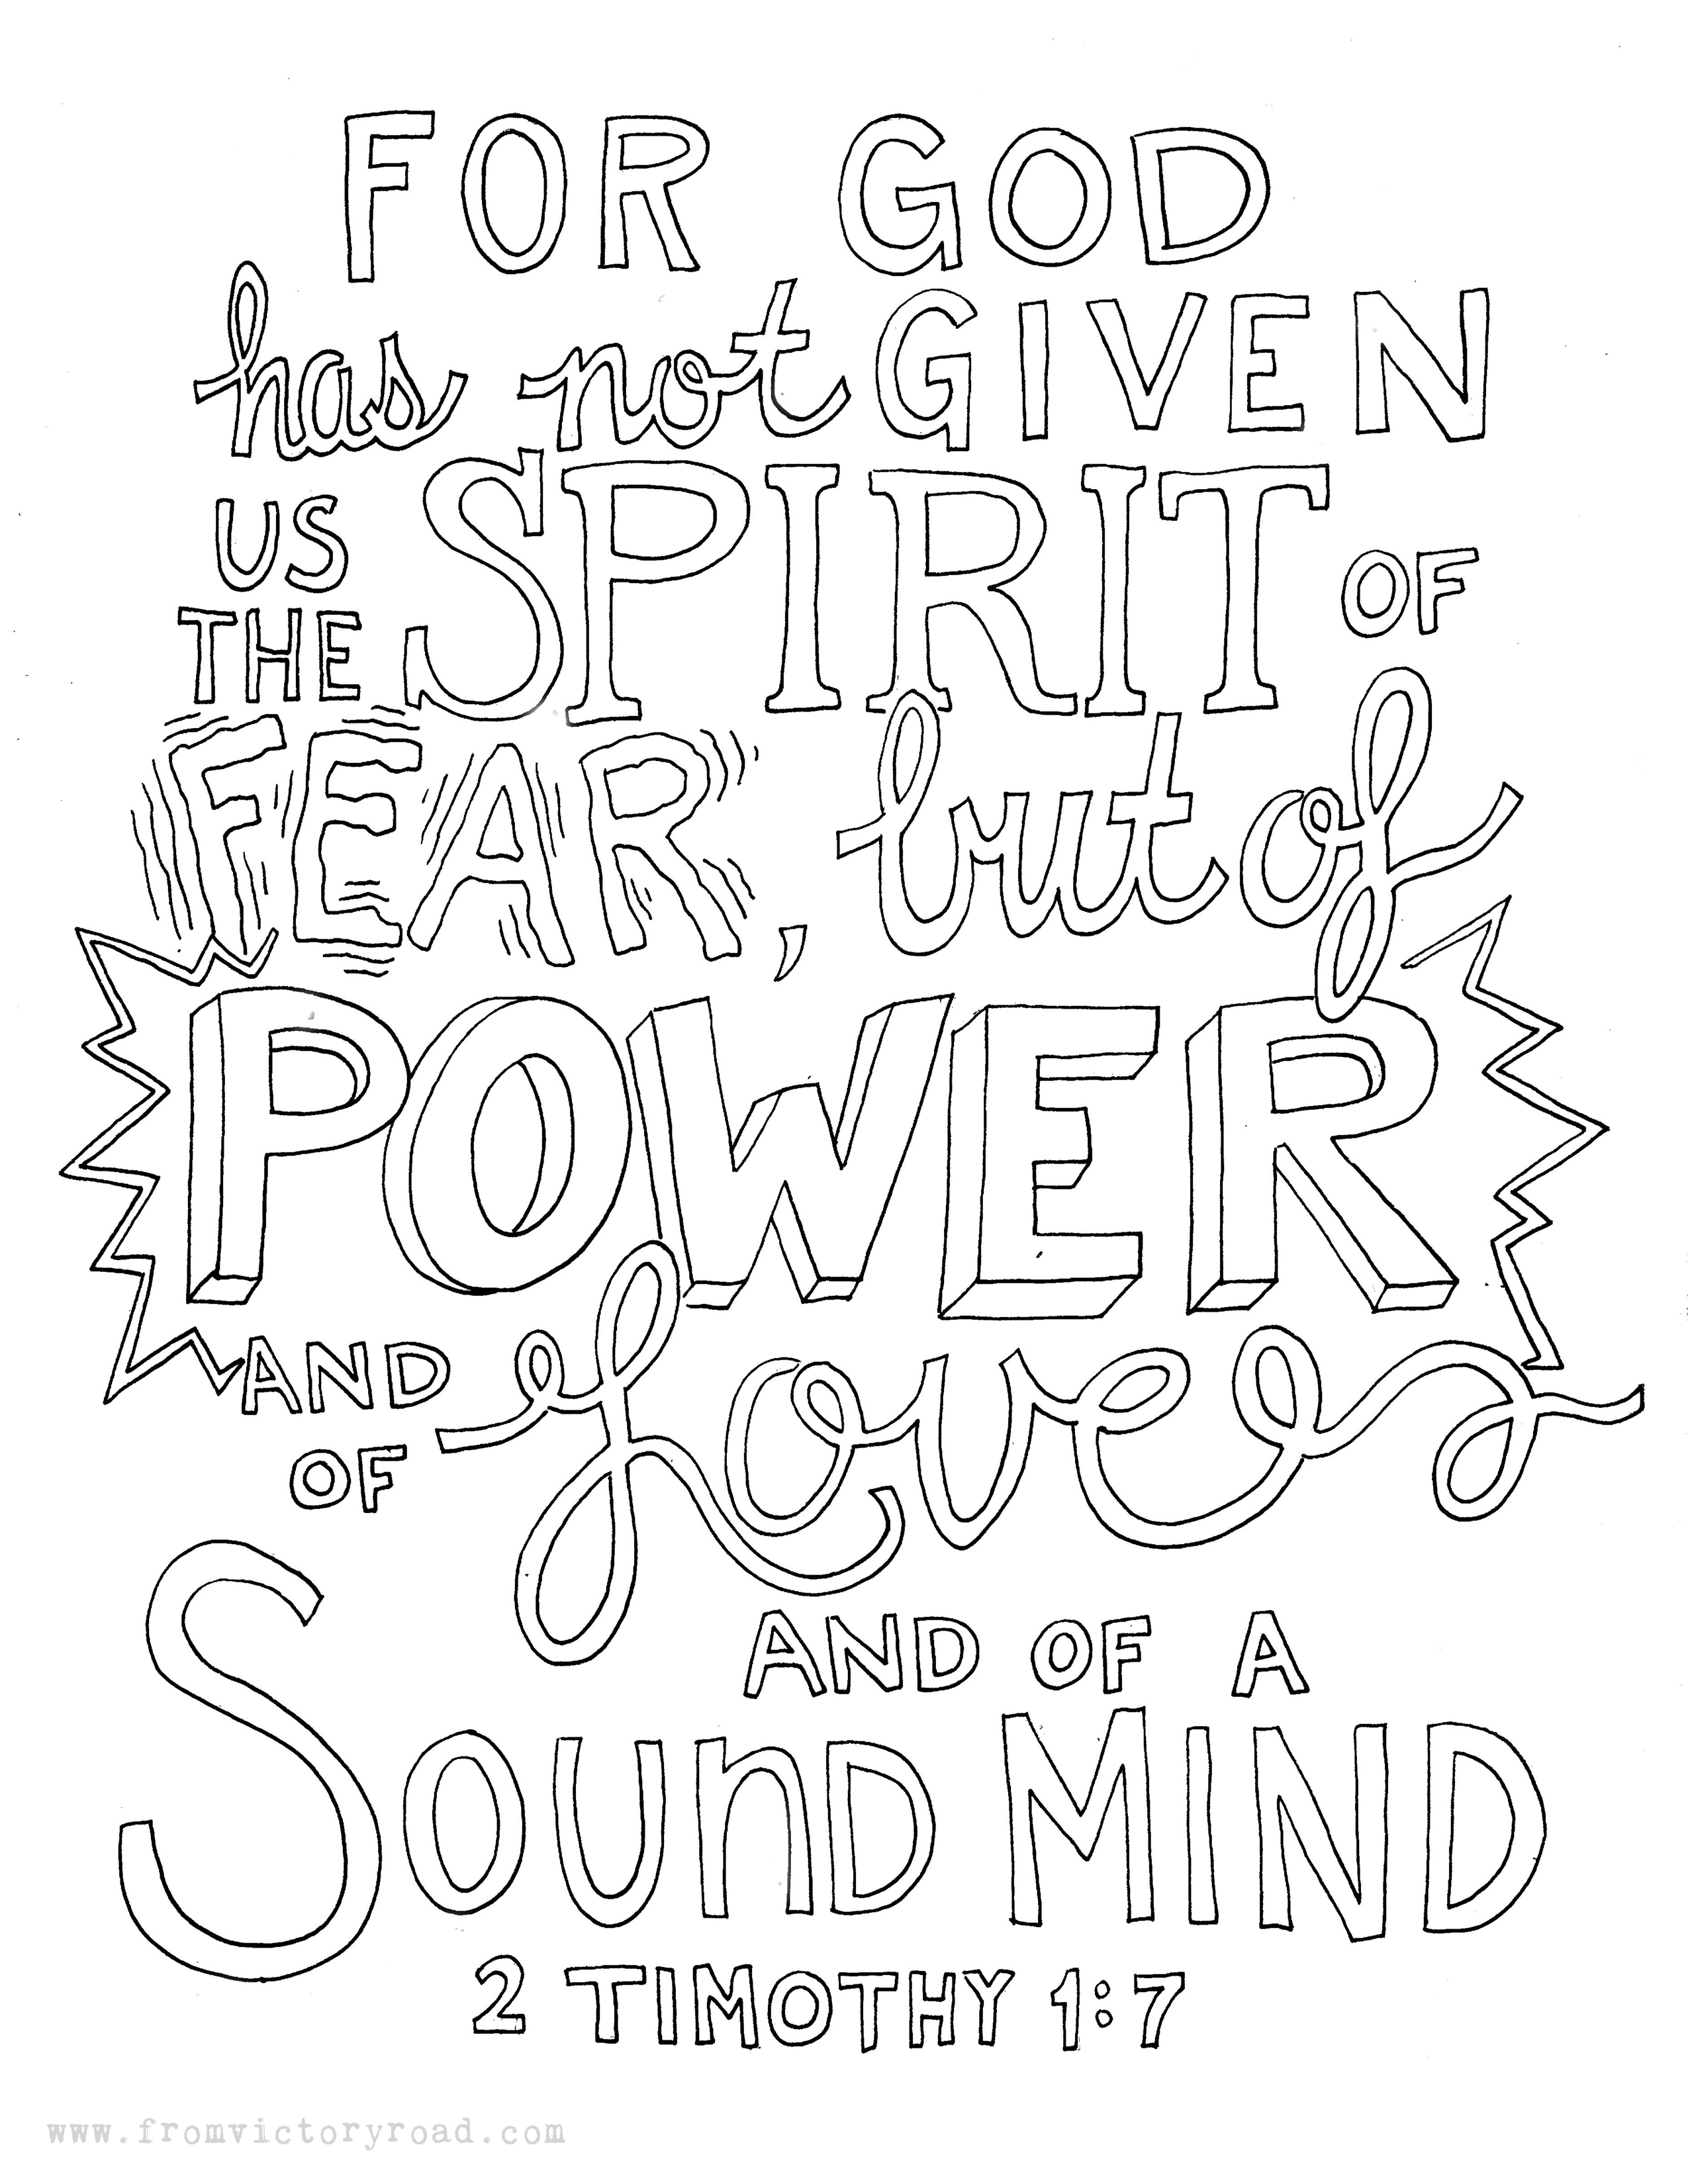 2 Timothy 1 7 Coloring Page From Victory Road